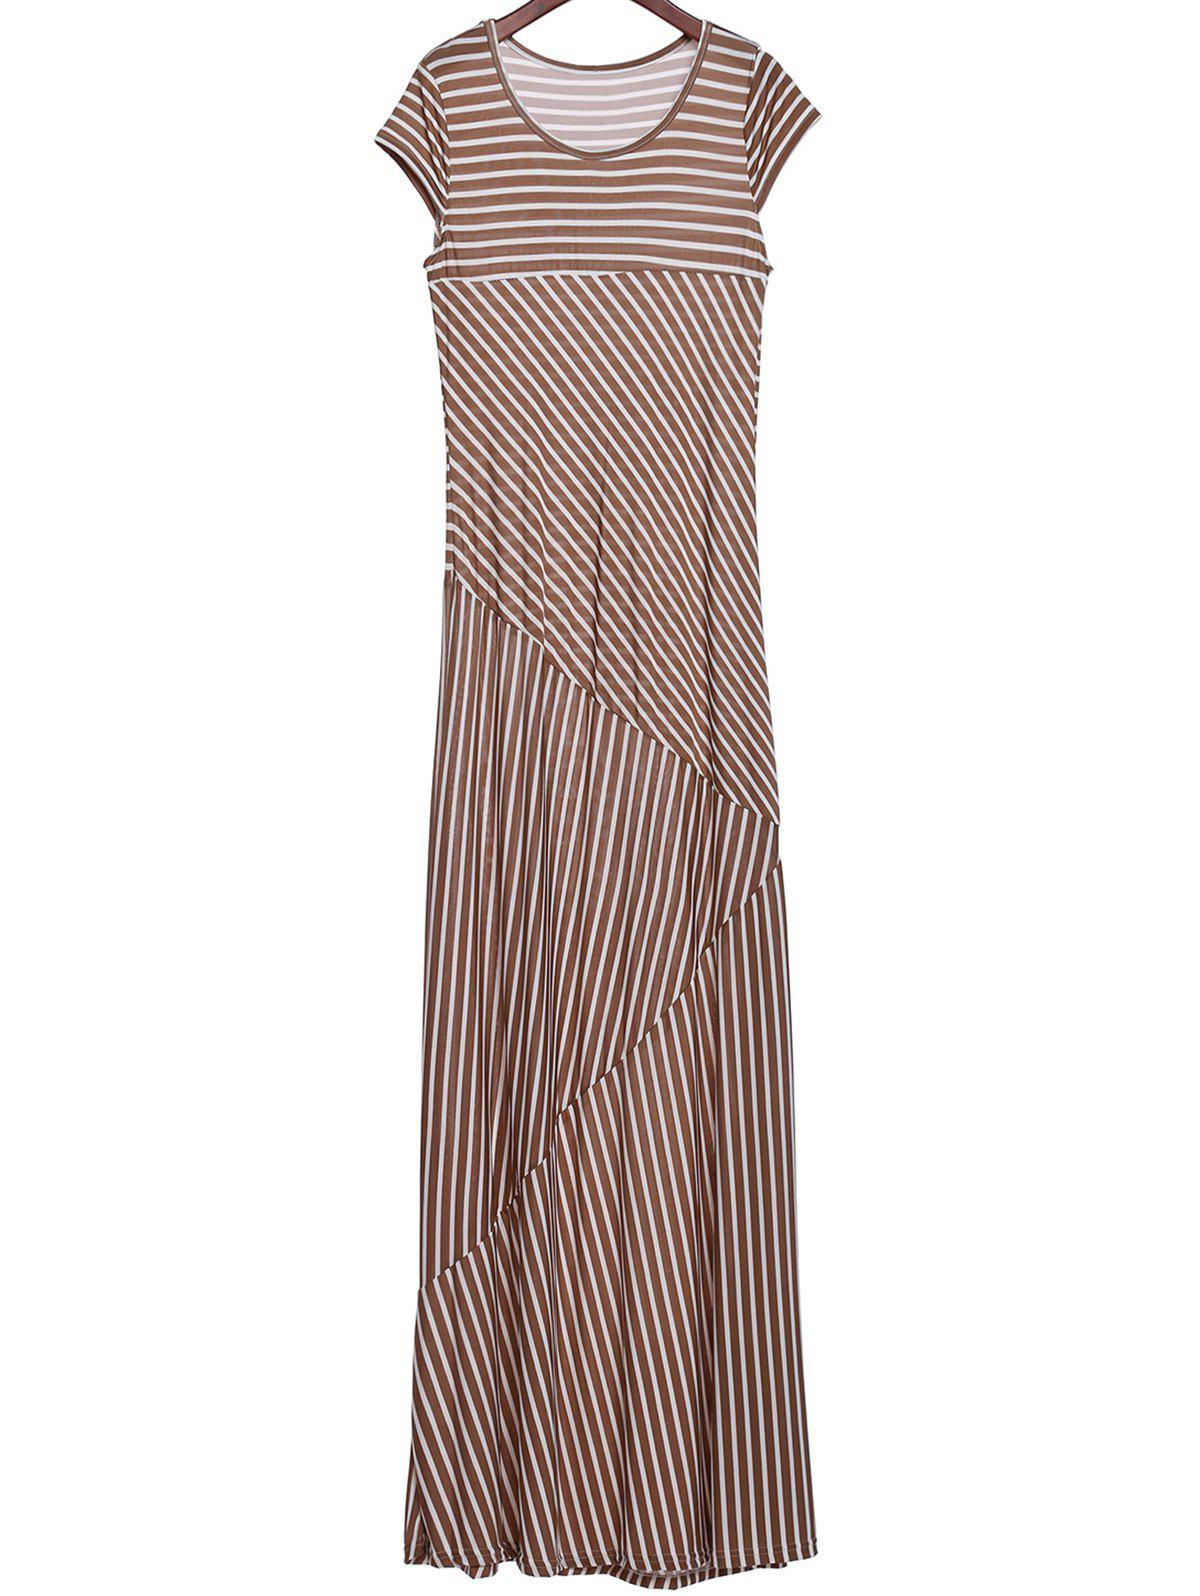 Short Sleeve Scoop Collar Striped Maxi Dress - KHAKI XL